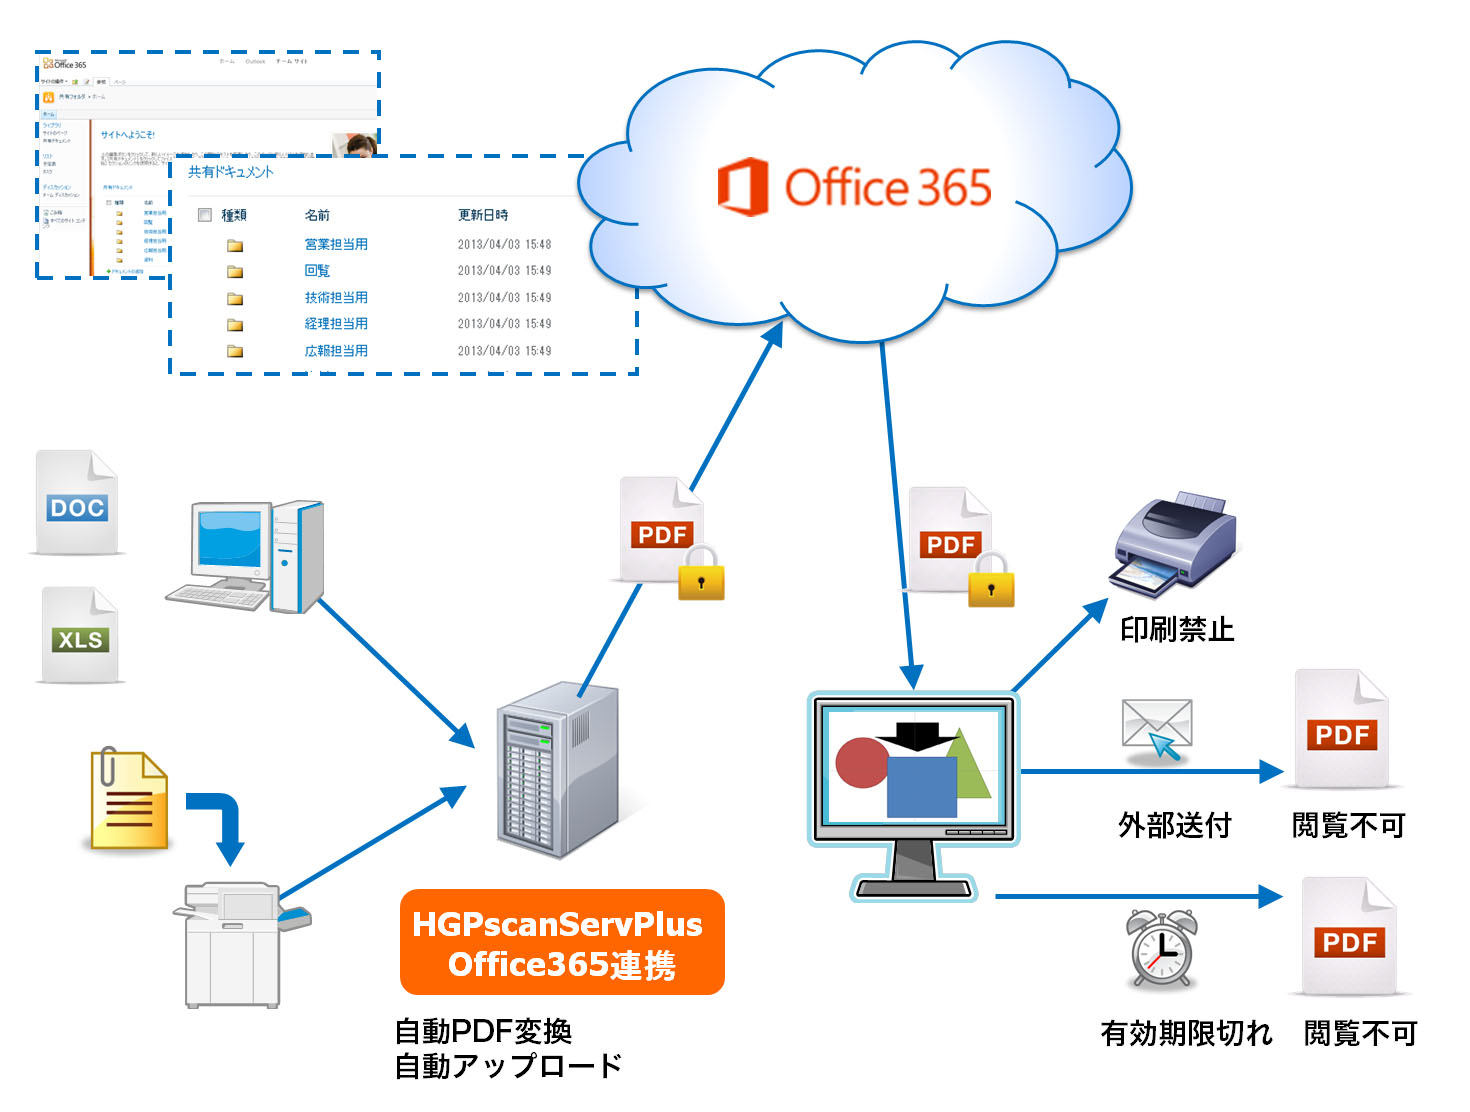 Pscanserv_office365.jpg